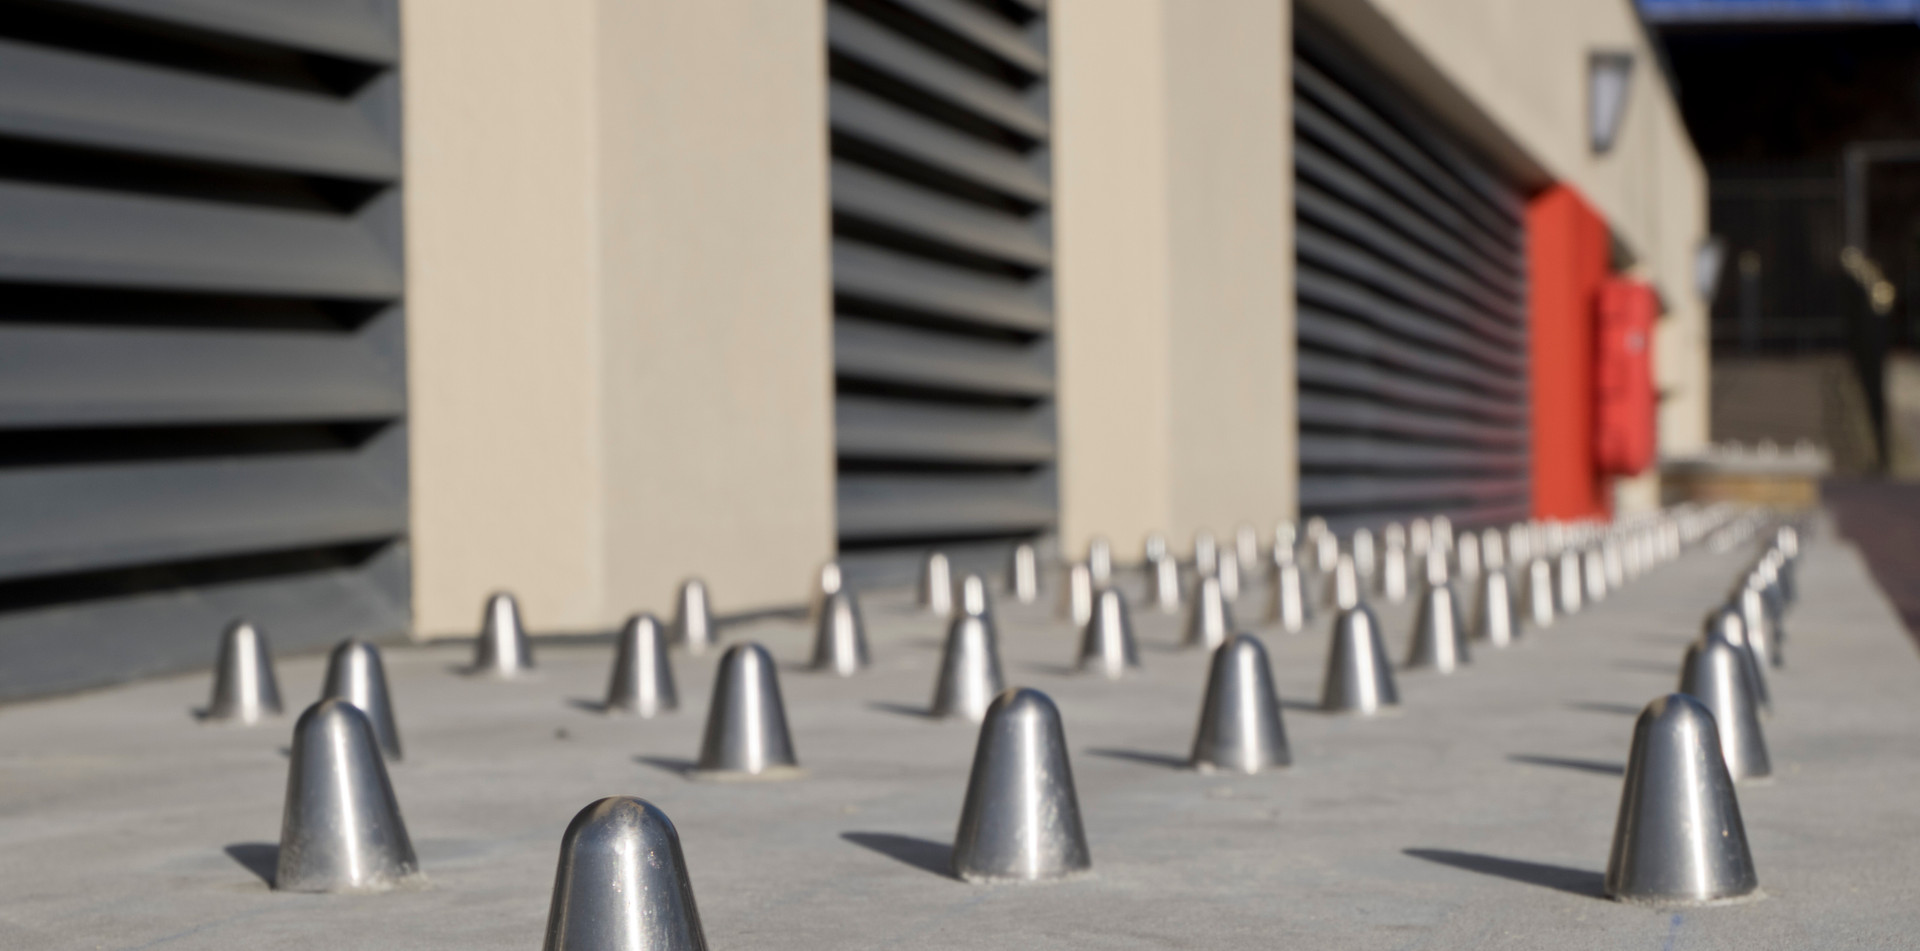 Anti-homeless spikes and rough surfaces installed in a luxury housing complex to deter homeless people from sleeping in the area around the Limehouse Basin marina in London